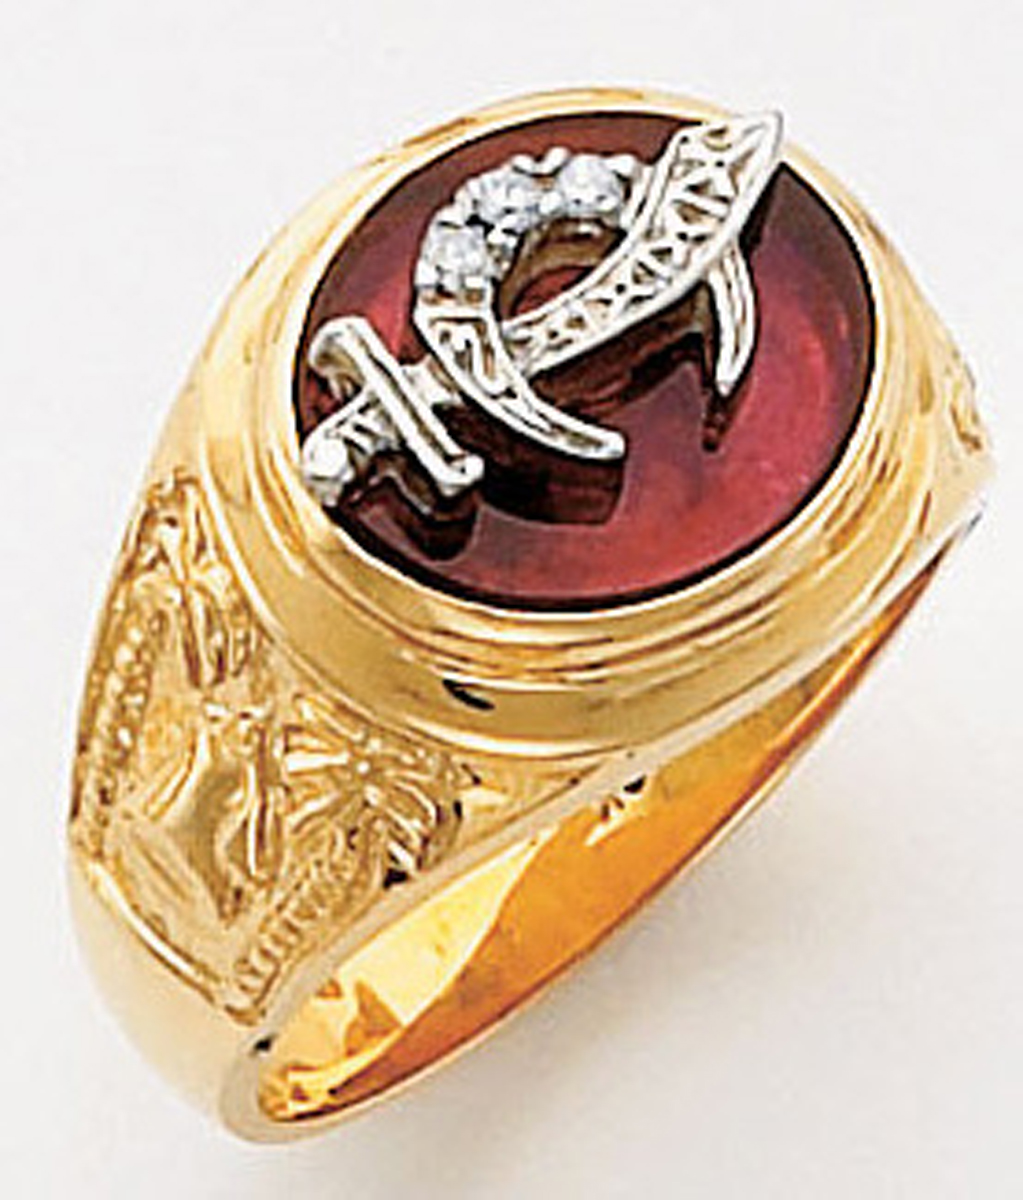 Masonic Shrine Ring Macoy Publishing Masonic Supply 5624BL